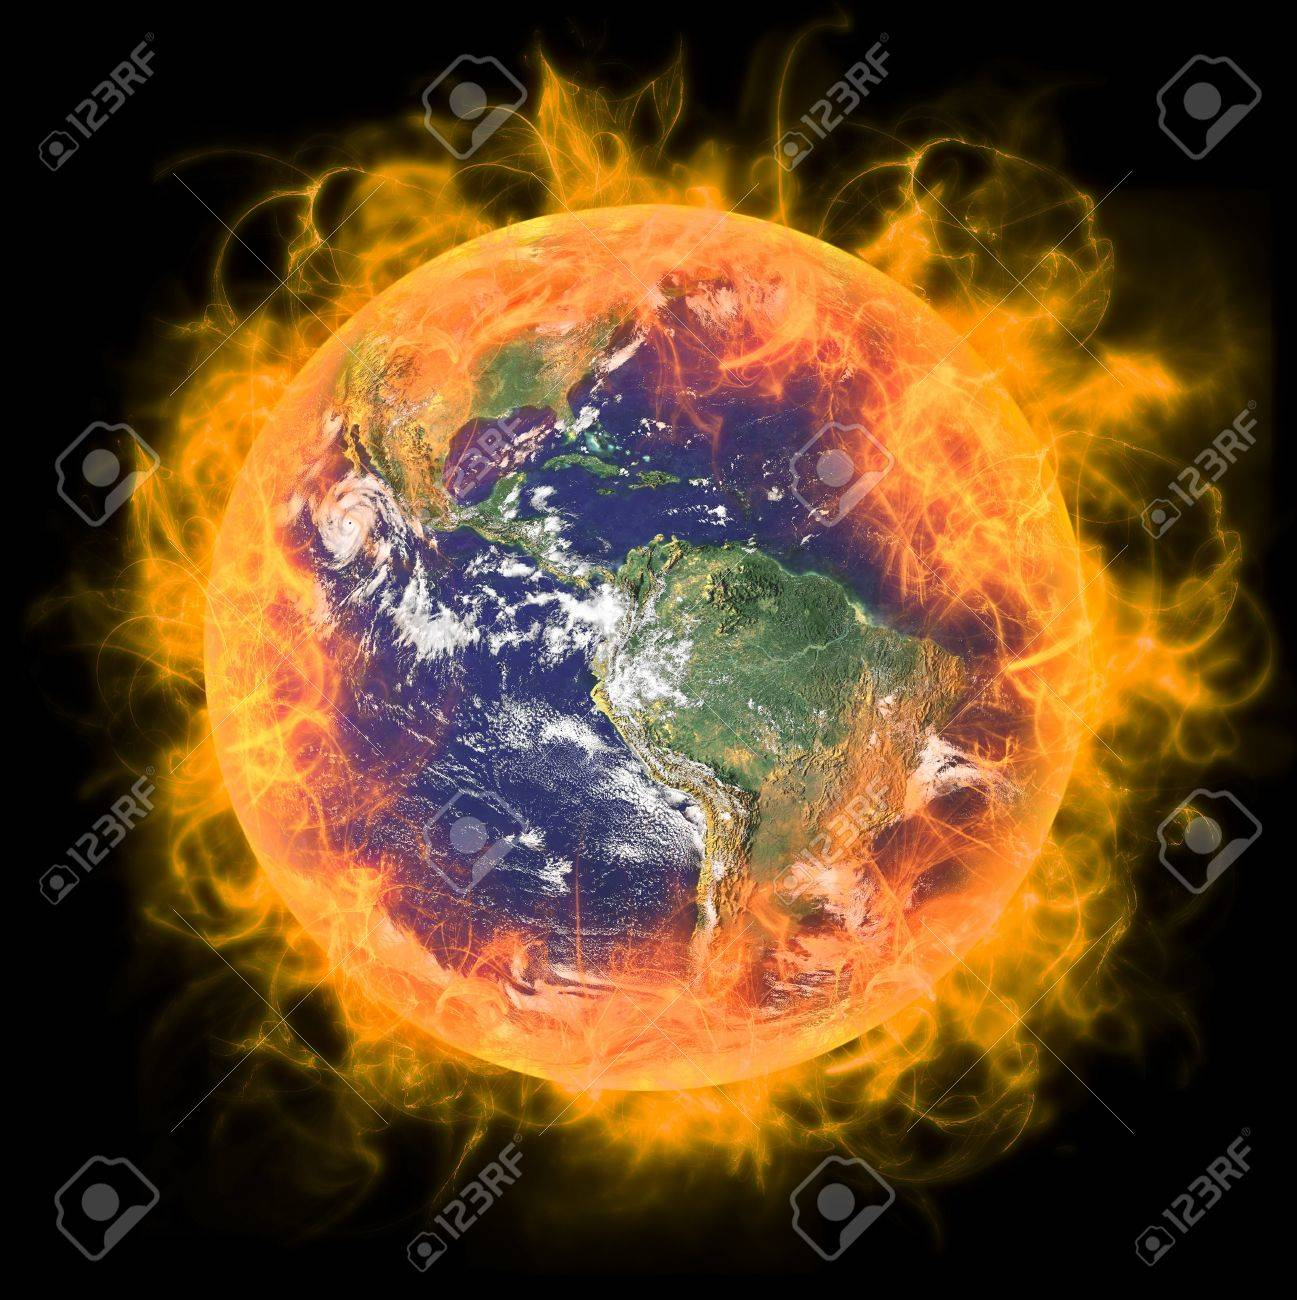 Real Earth Planet in space. In red fire. Remodeled from real Earth NASA foto. Stock Photo - 8367853